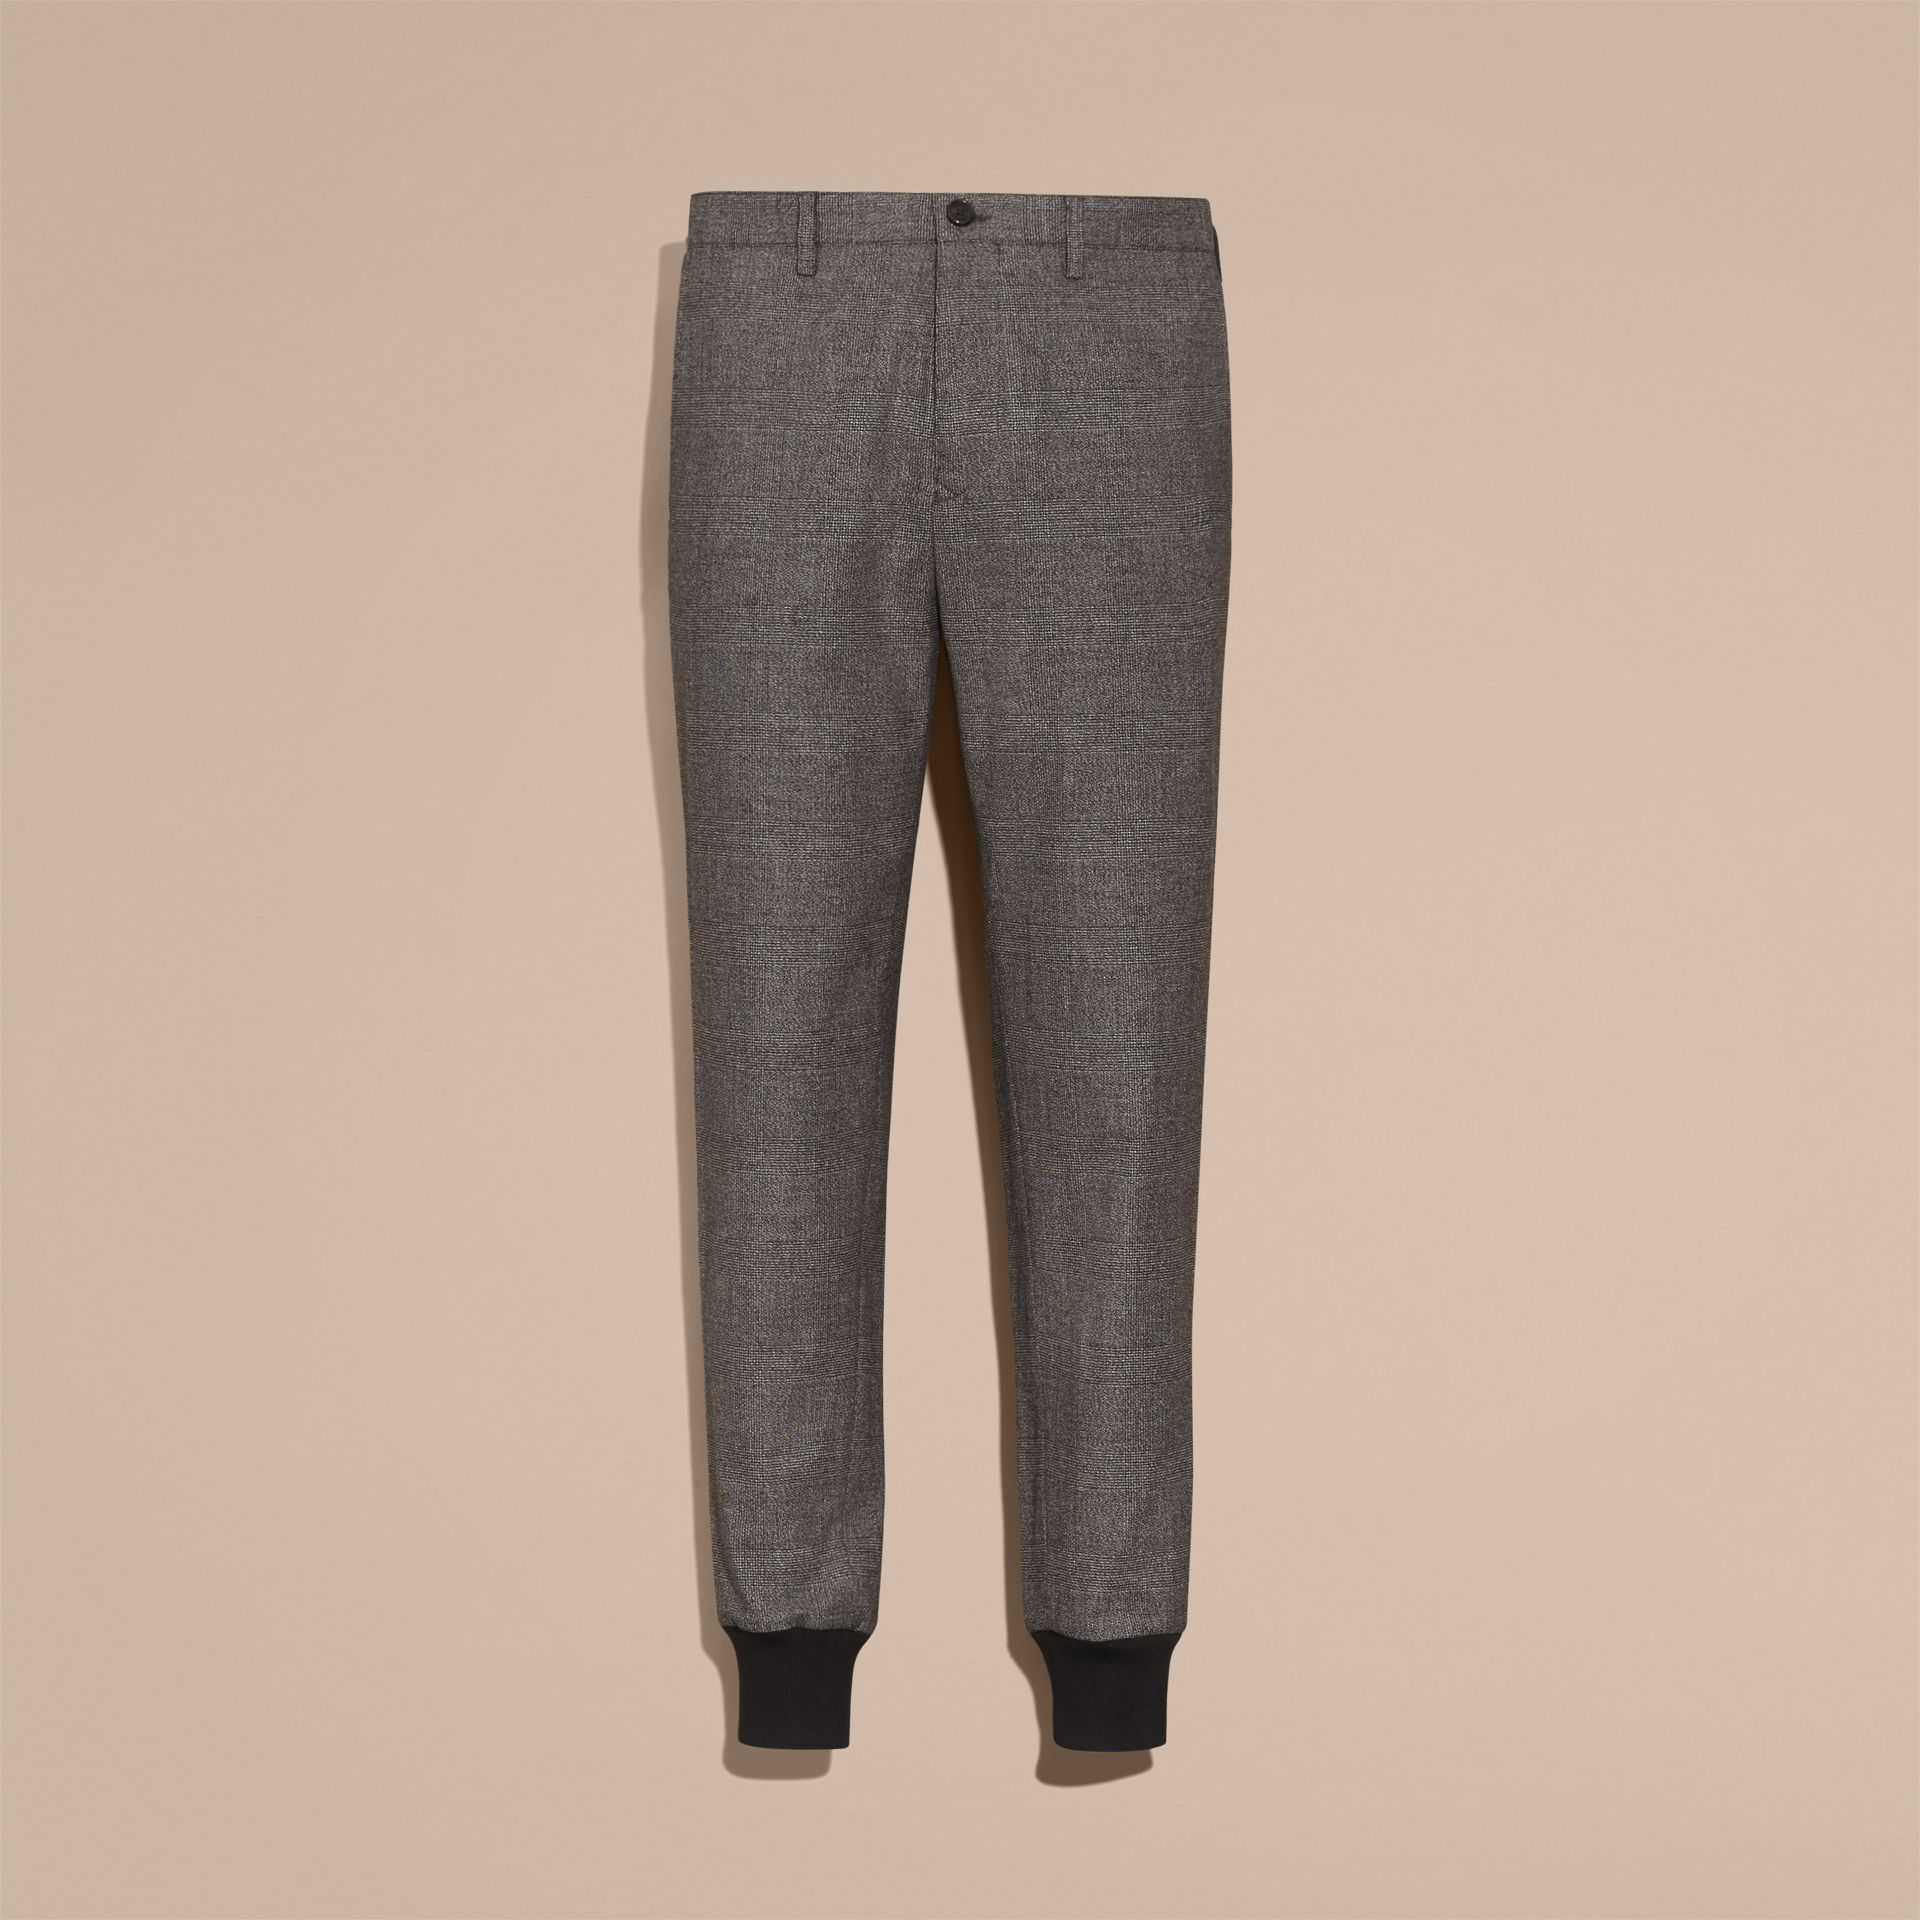 Prince of Wales Cotton Wool Trousers with Knit Cuffs - gallery image 4